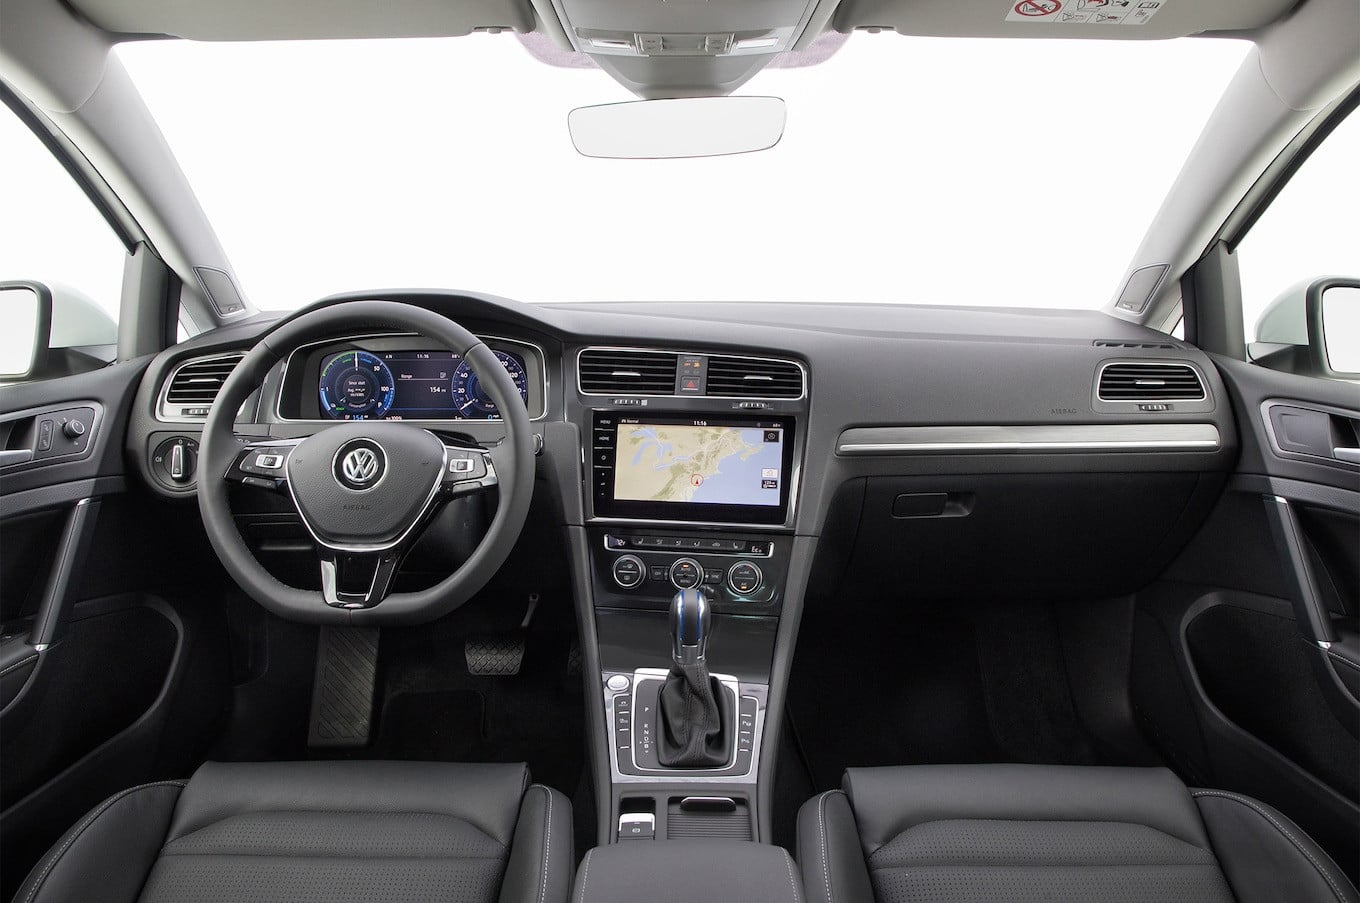 Vw Atlas Interior >> Best Electric Cars 2019 Nomination: Volkswagen e-Golf ...